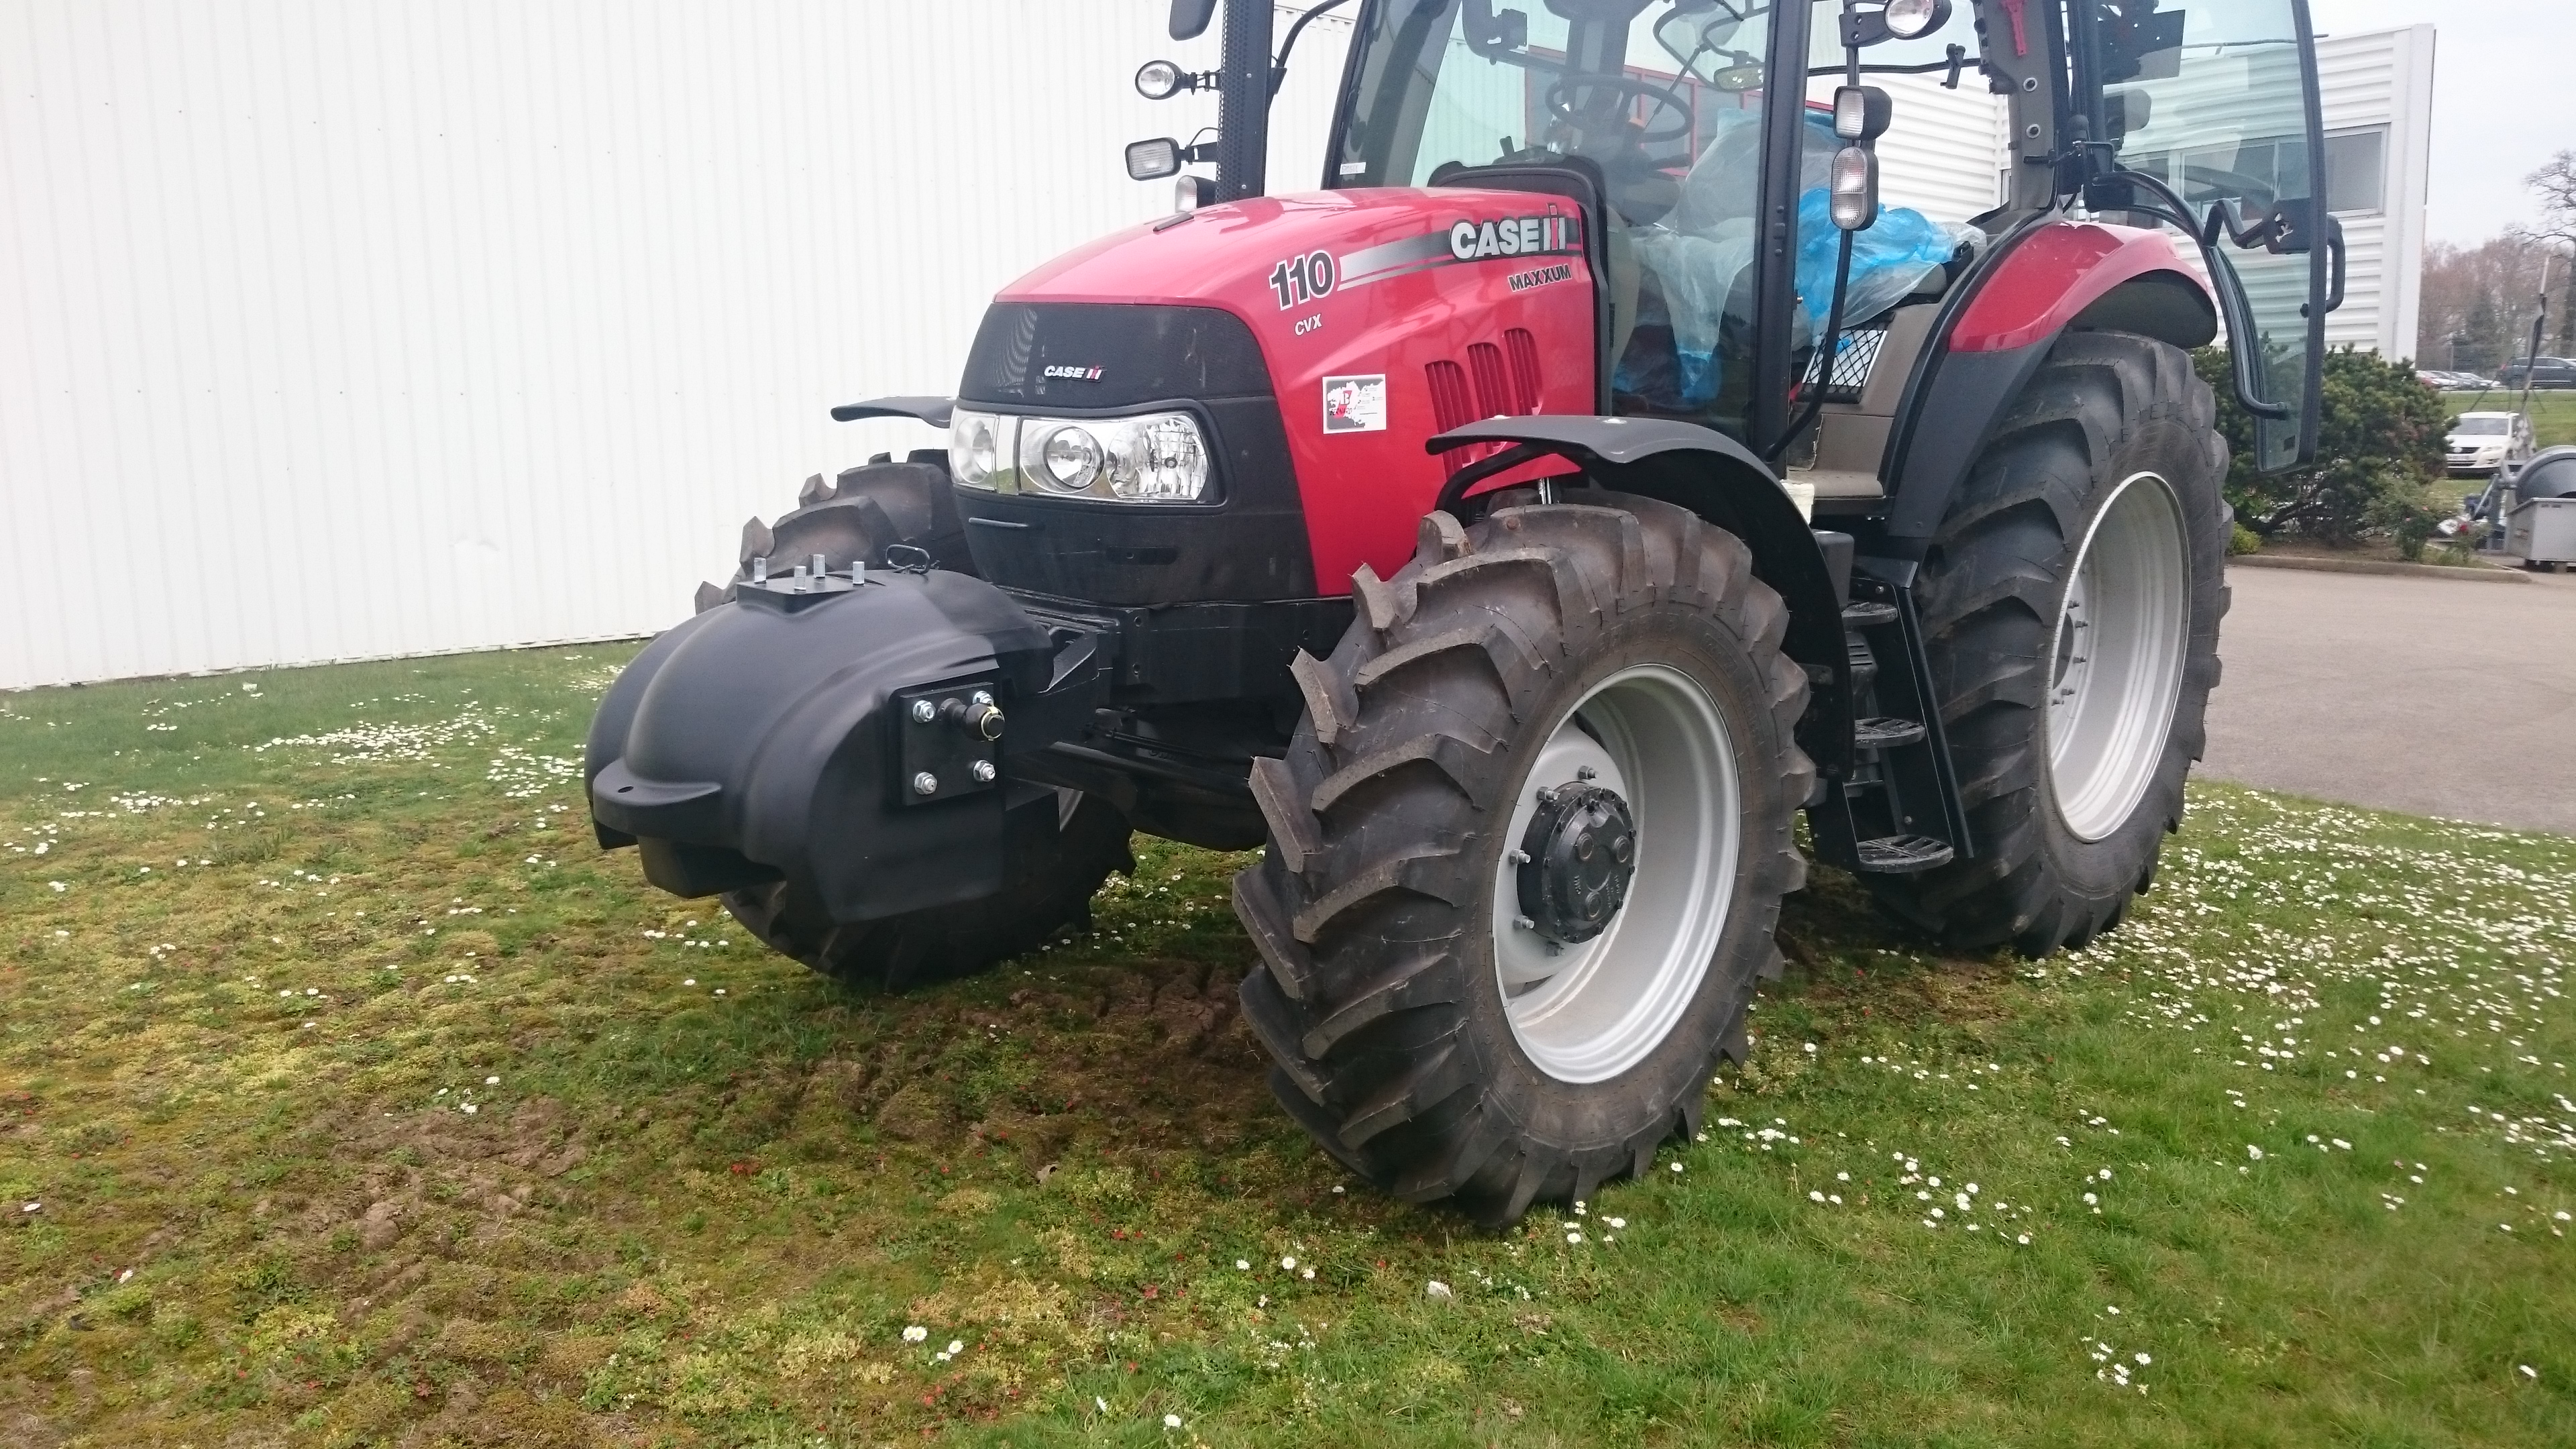 porte_masse_evolutive_tracteur